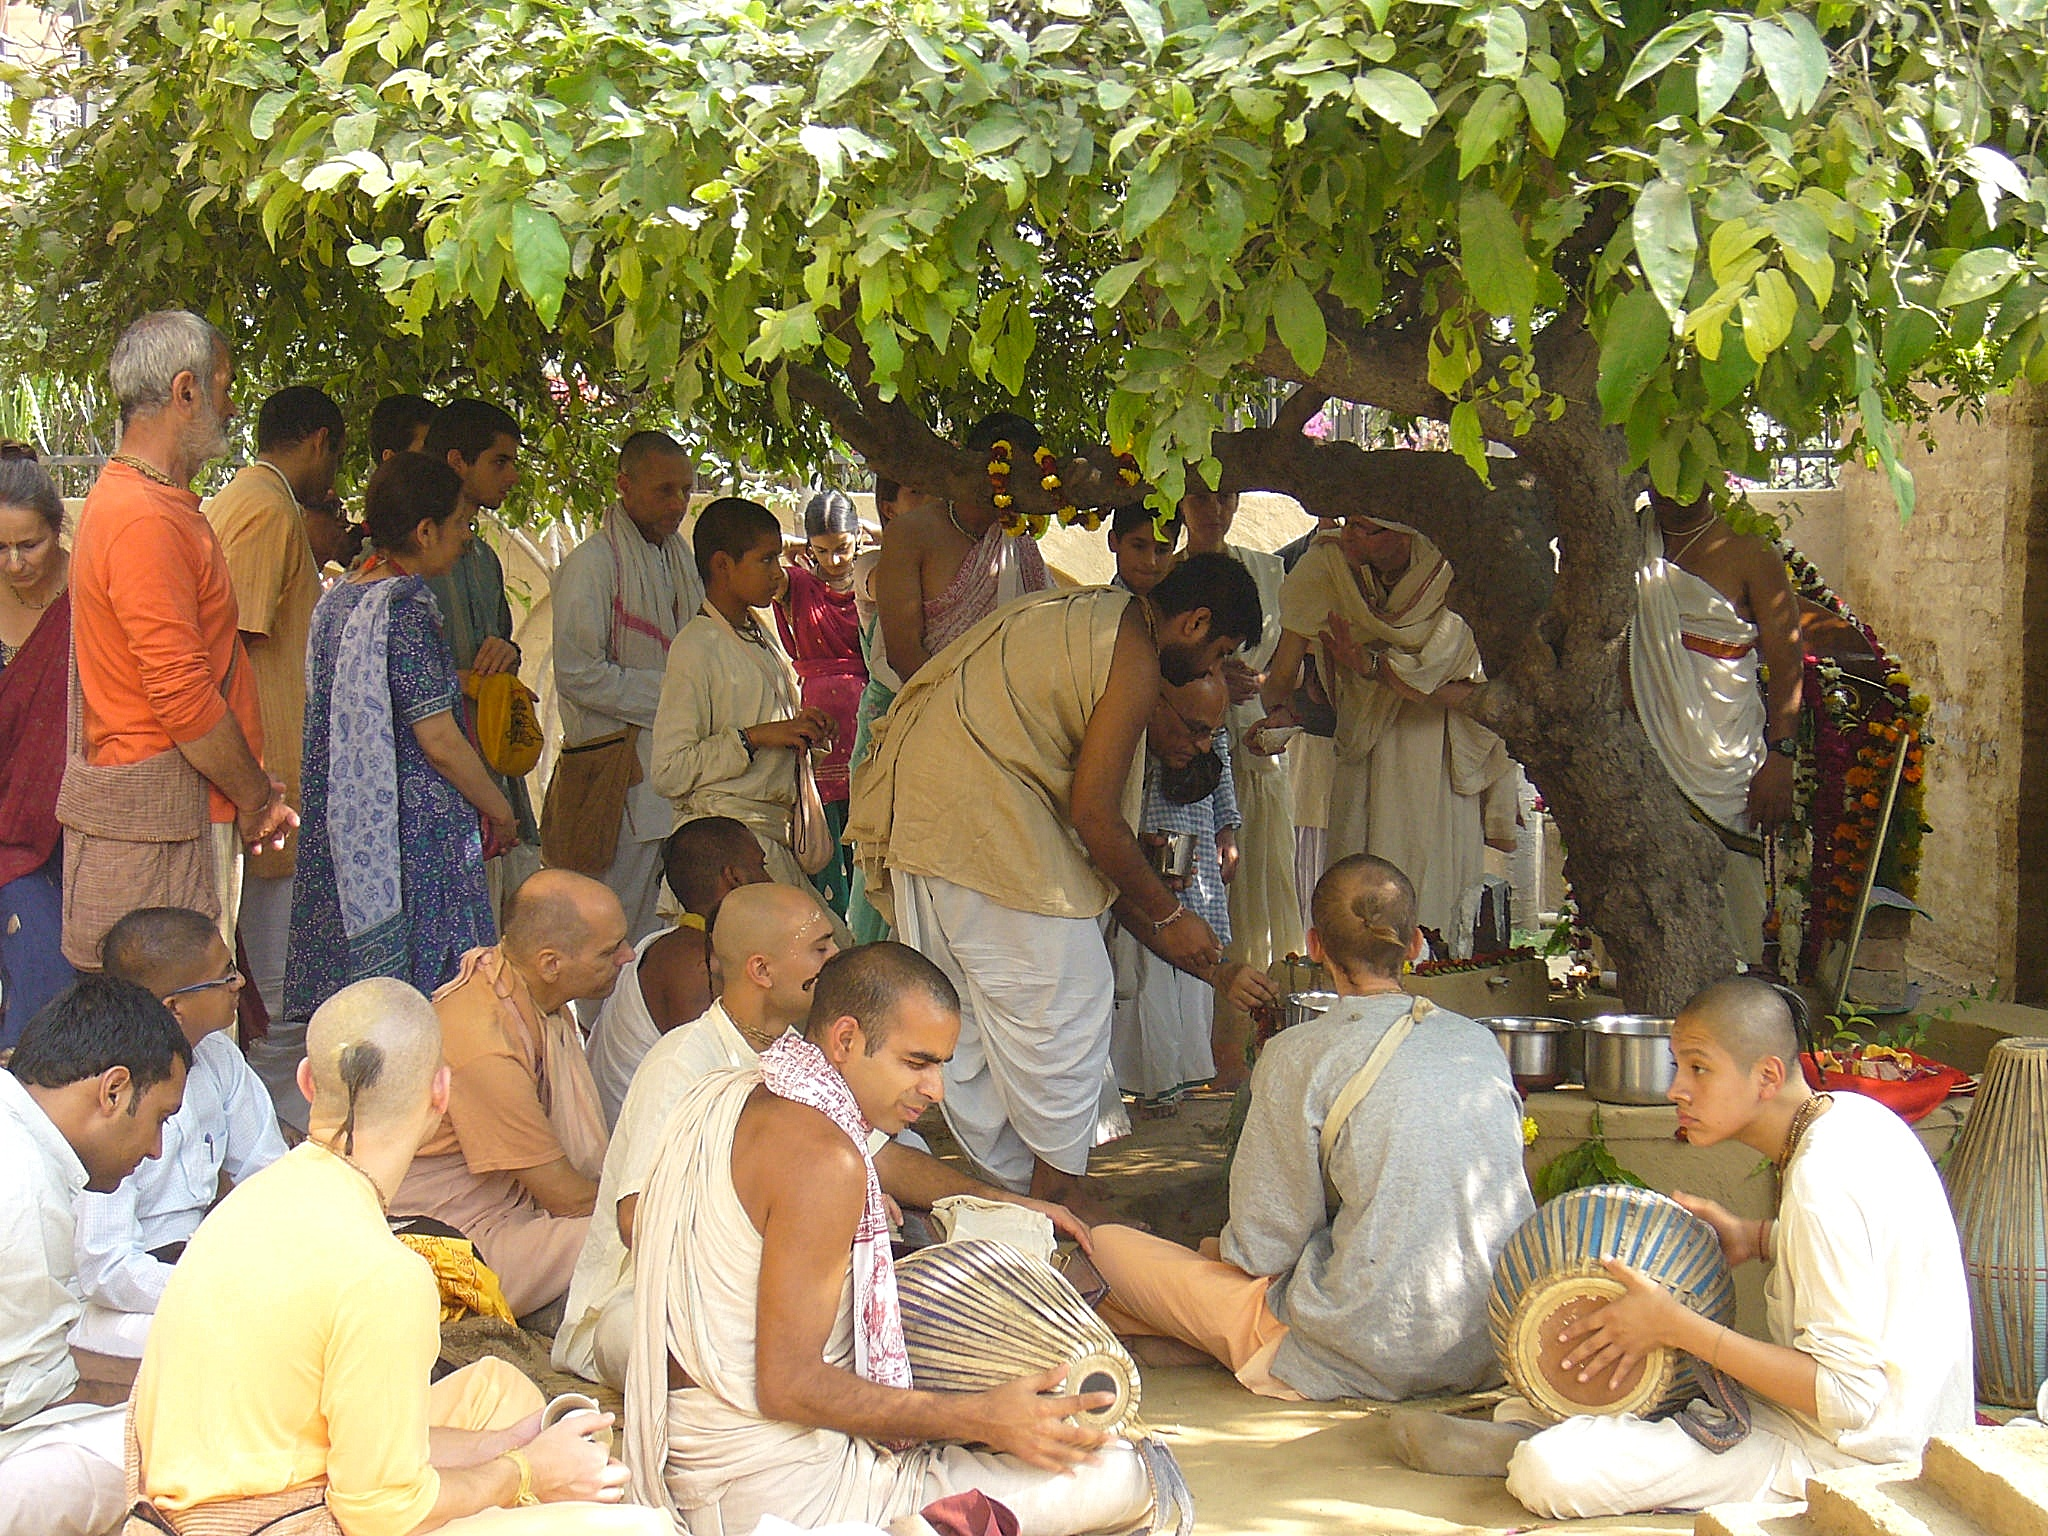 Devotees at a courtyard festival